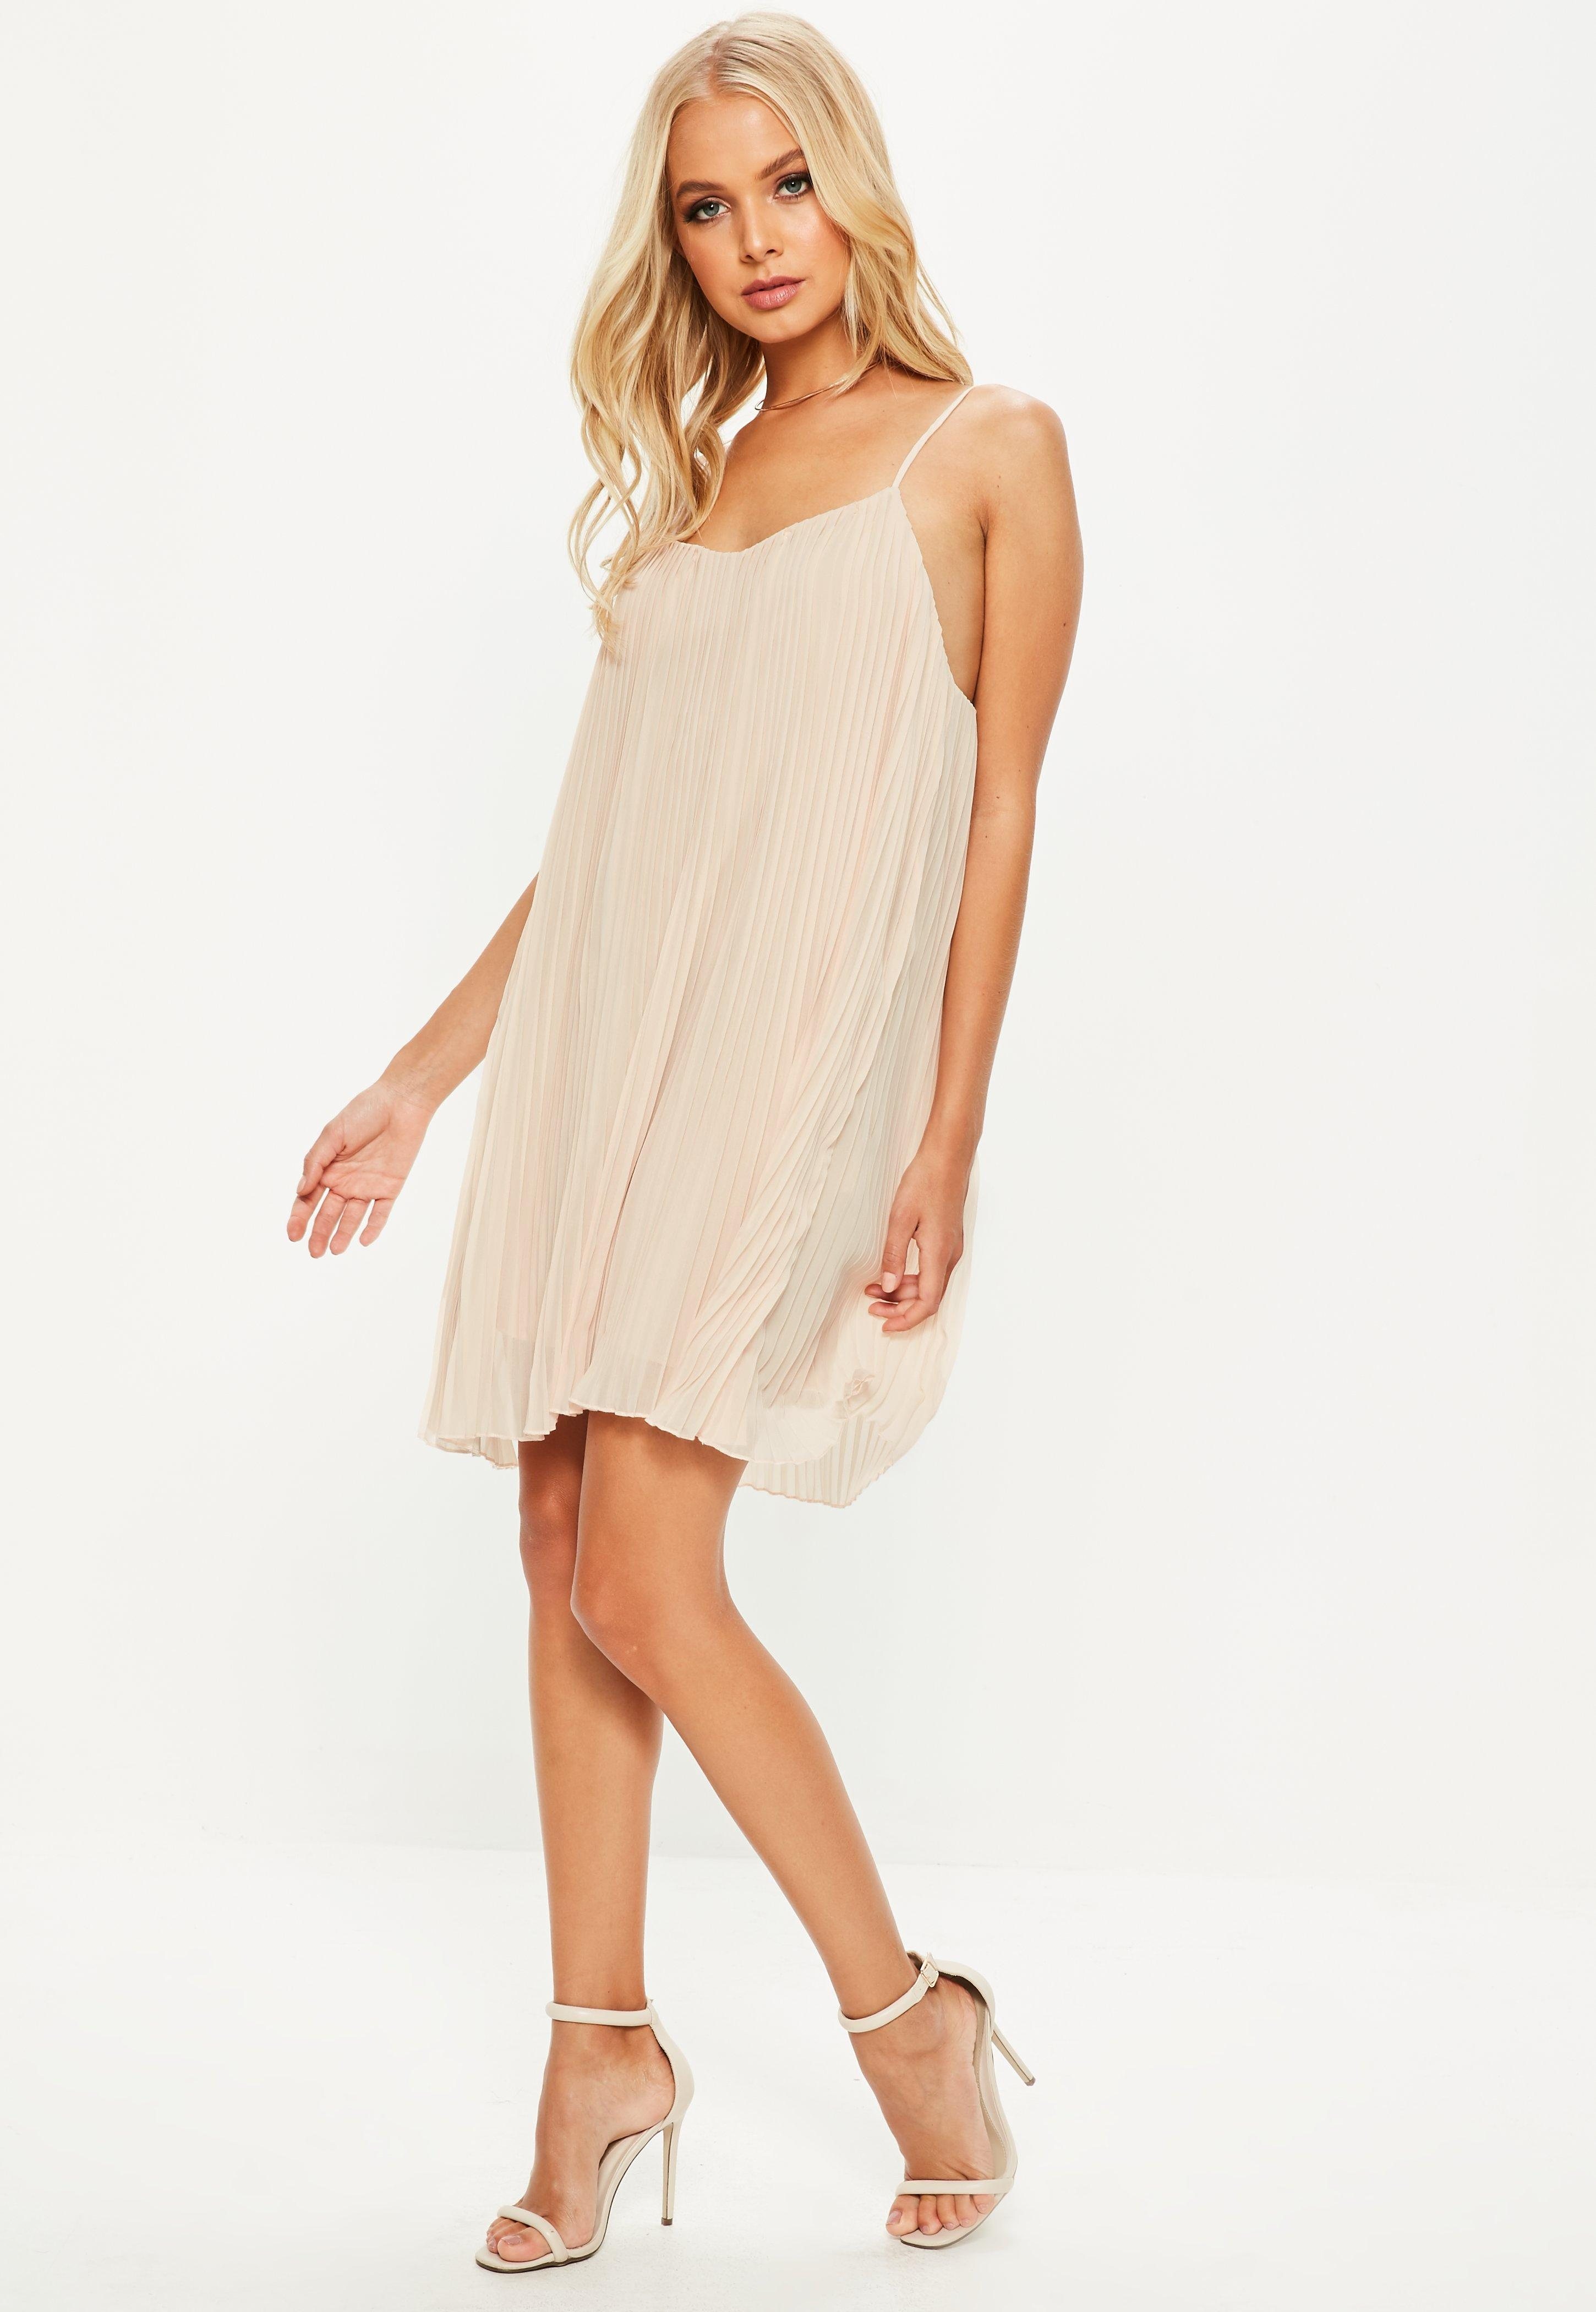 dcb273bf0f26 Lyst - Missguided Nude Strappy Pleated Swing Dress in Natural